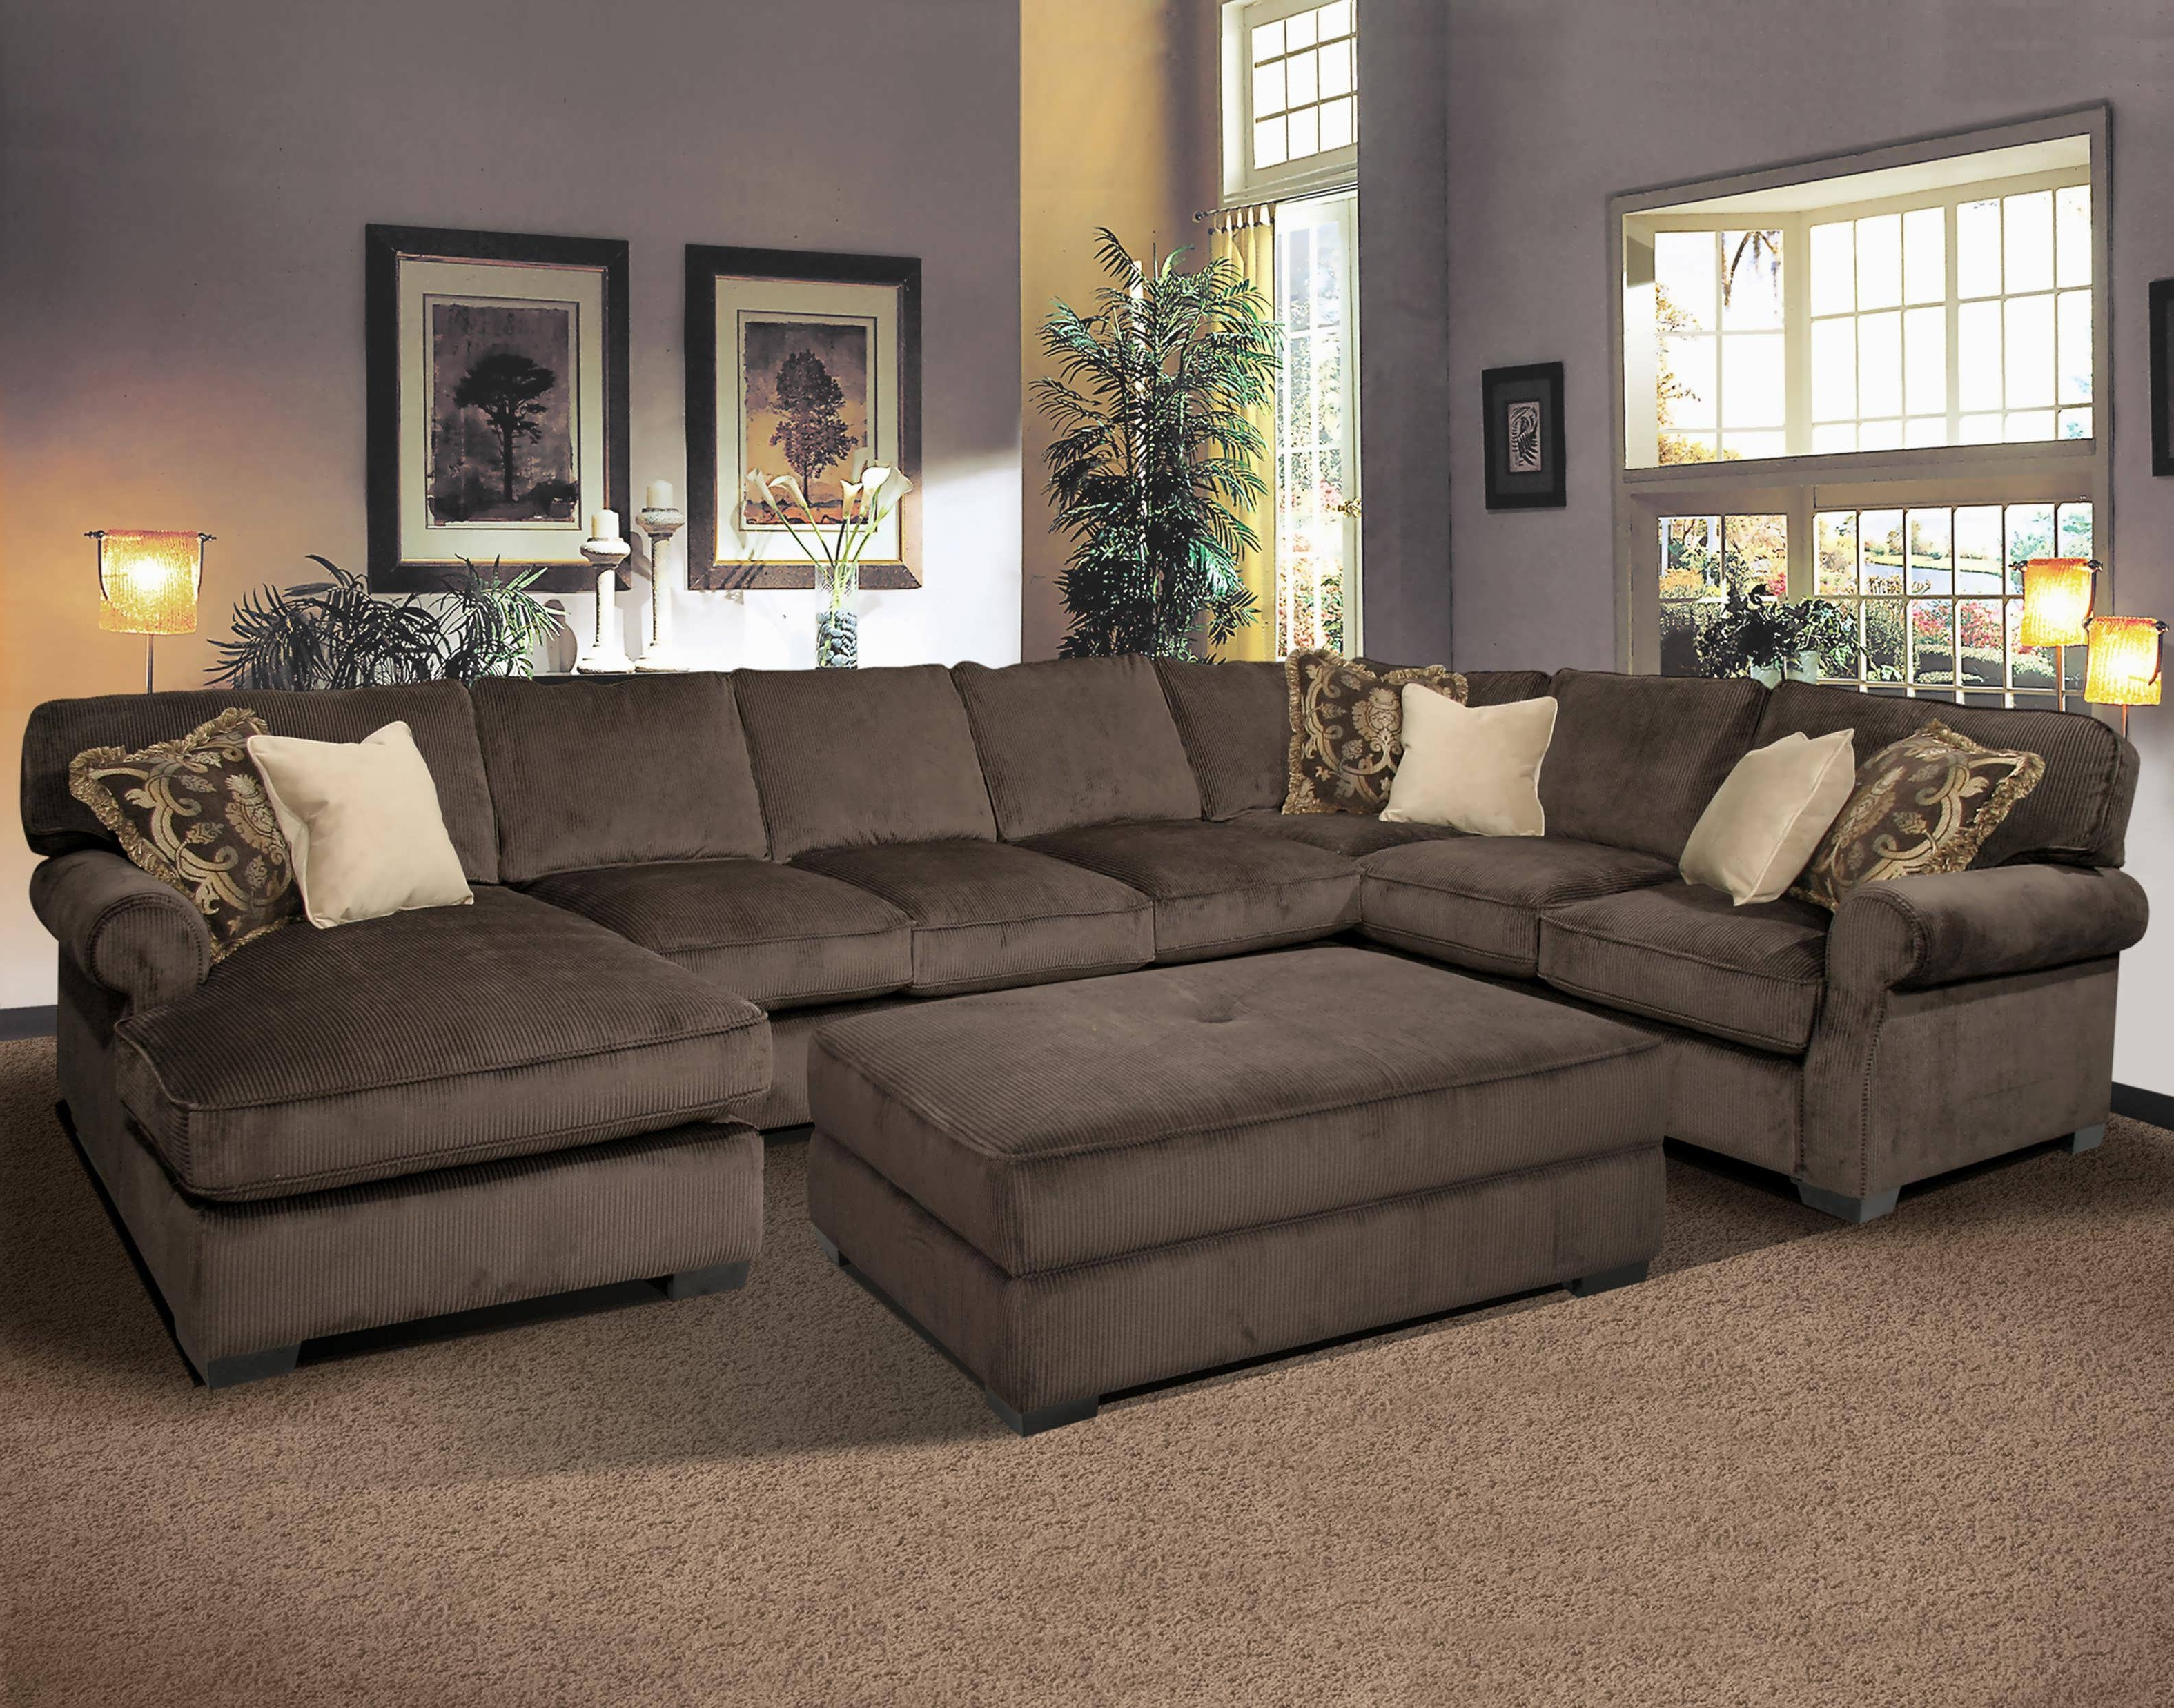 Sofa : L Sectional Couch Extra Large Sofa Large Sectional Couch Regarding Well Known Oversized Sectionals With Chaise (View 10 of 15)